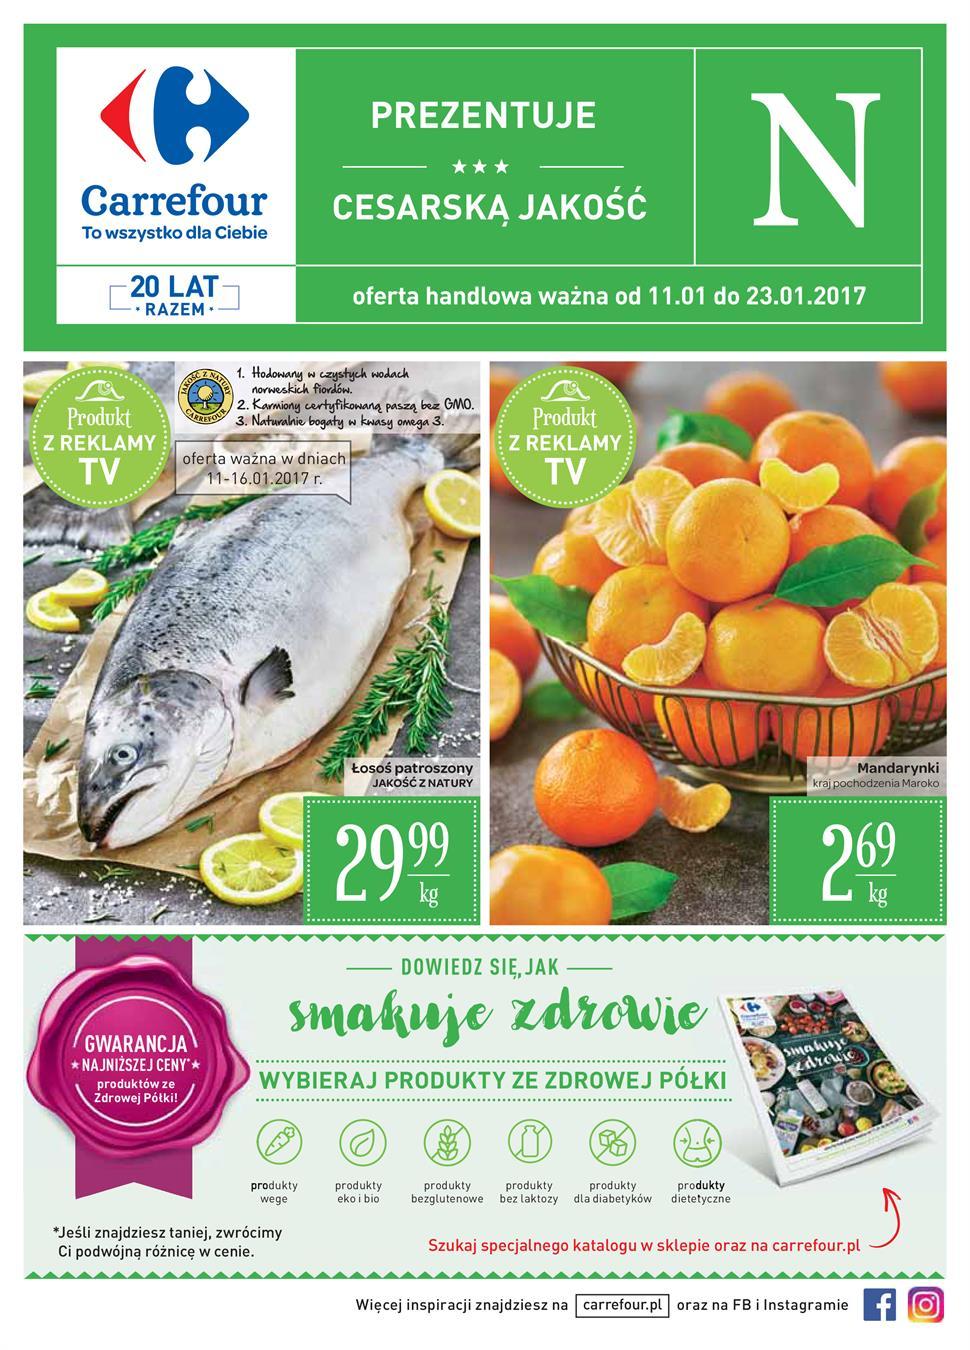 Gazetka Carrefour Polska Sp. z o.o. nr 8 od 2017-01-11 do 2017-01-23